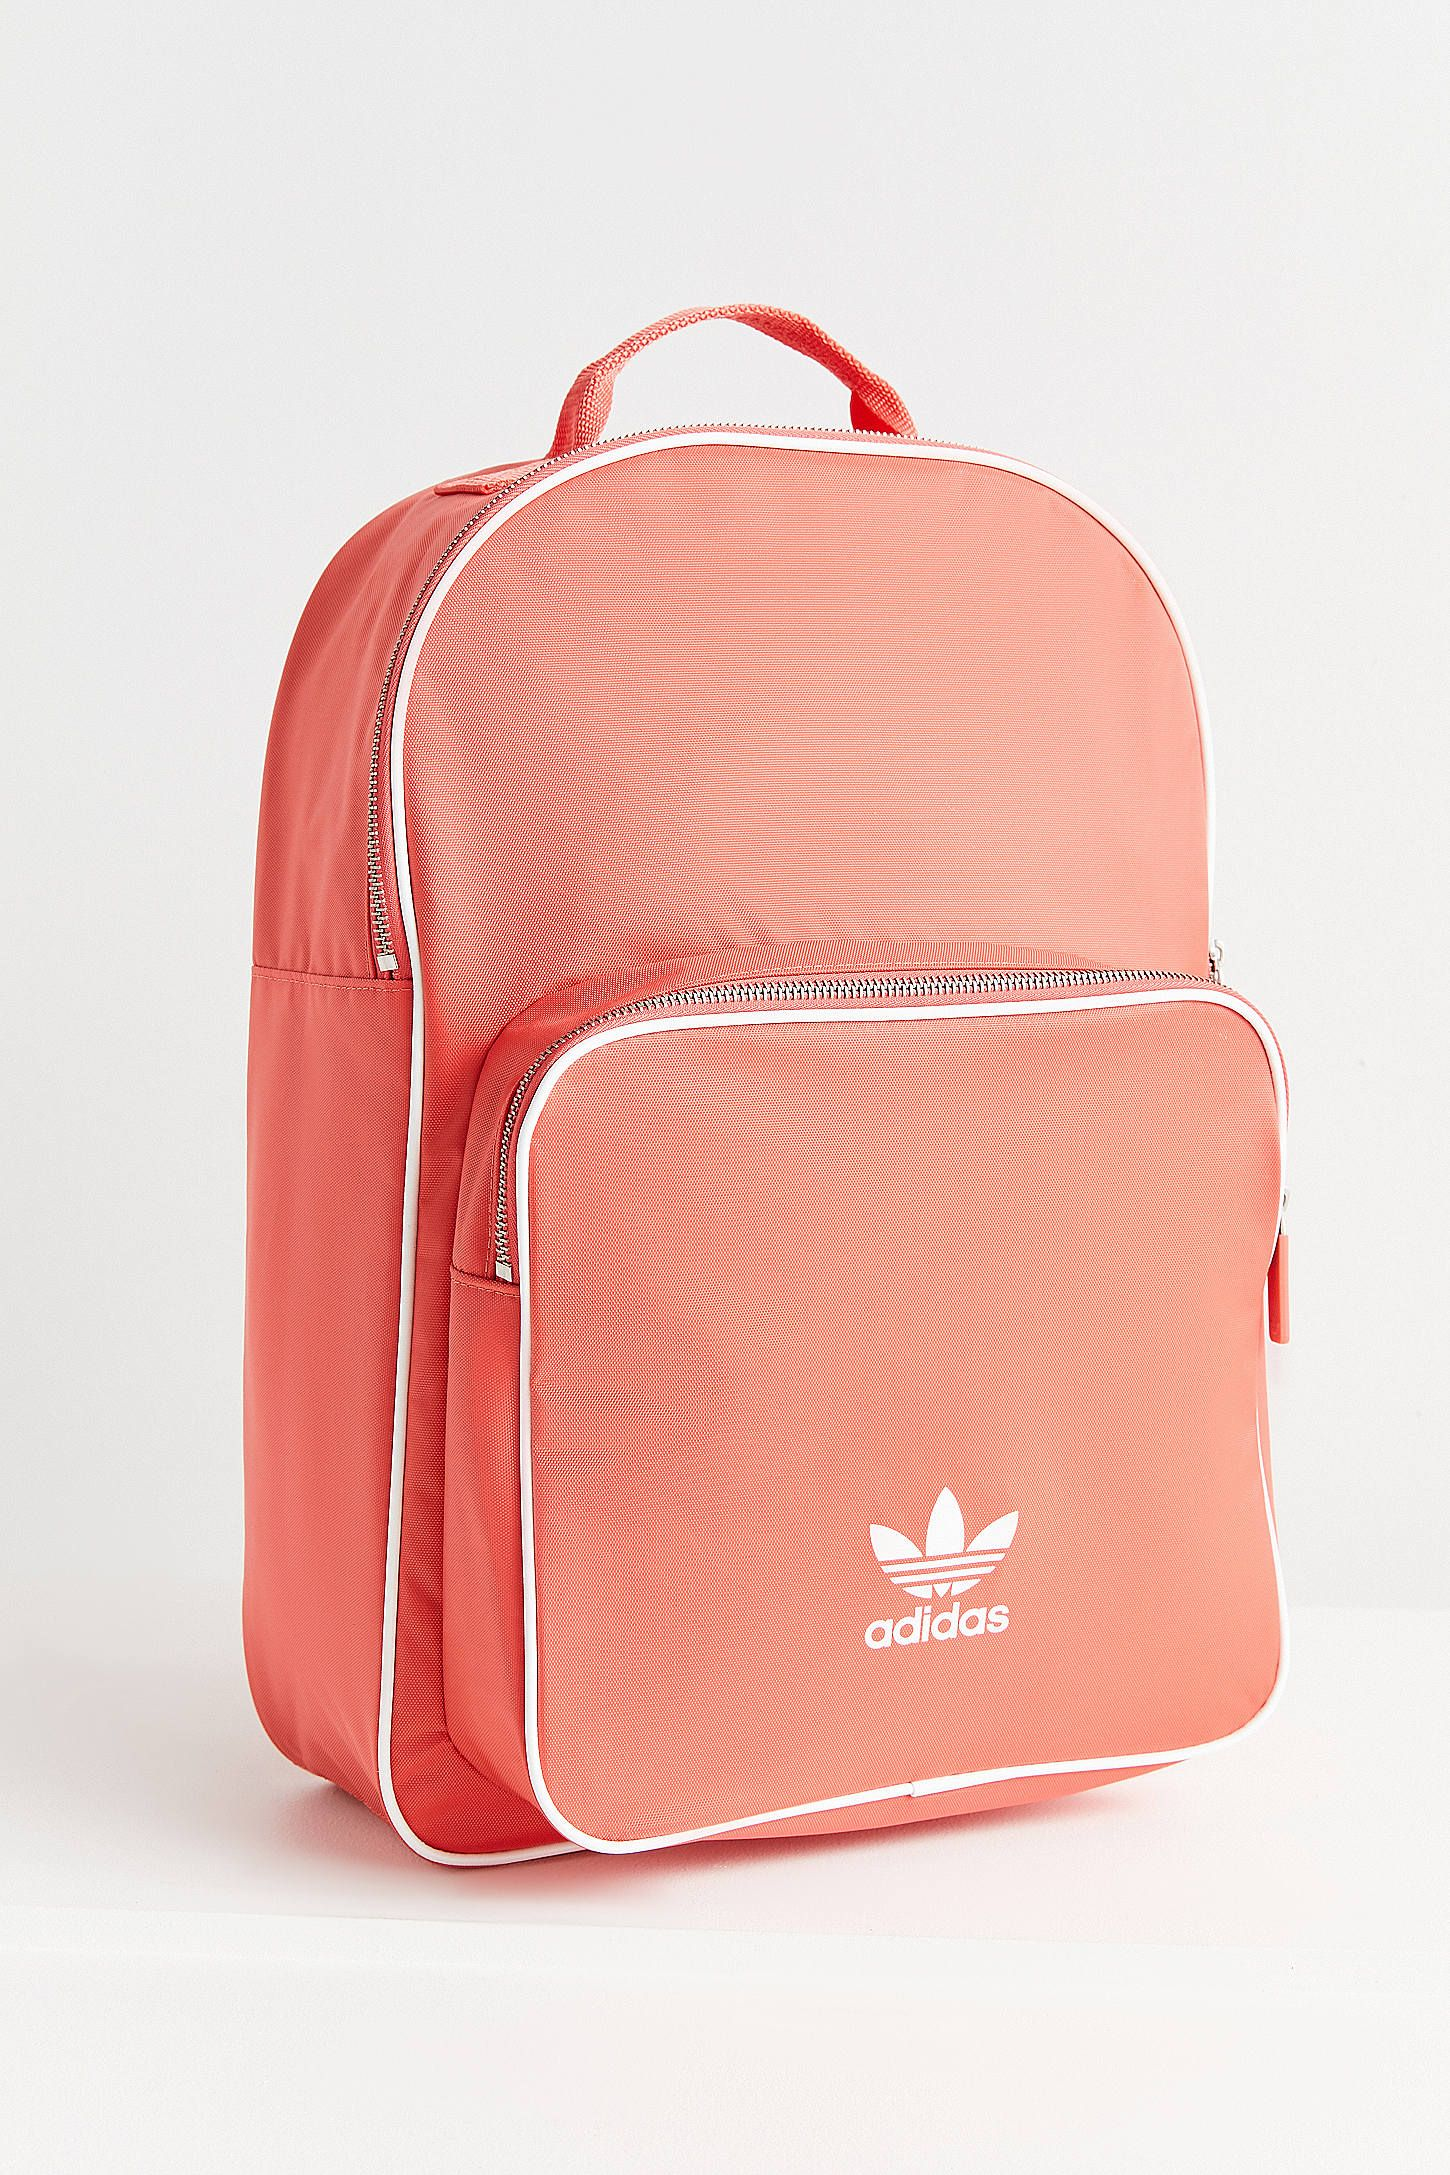 15 Athleisure Pieces to Take on the Road Adidas Backpack e8f5171102050